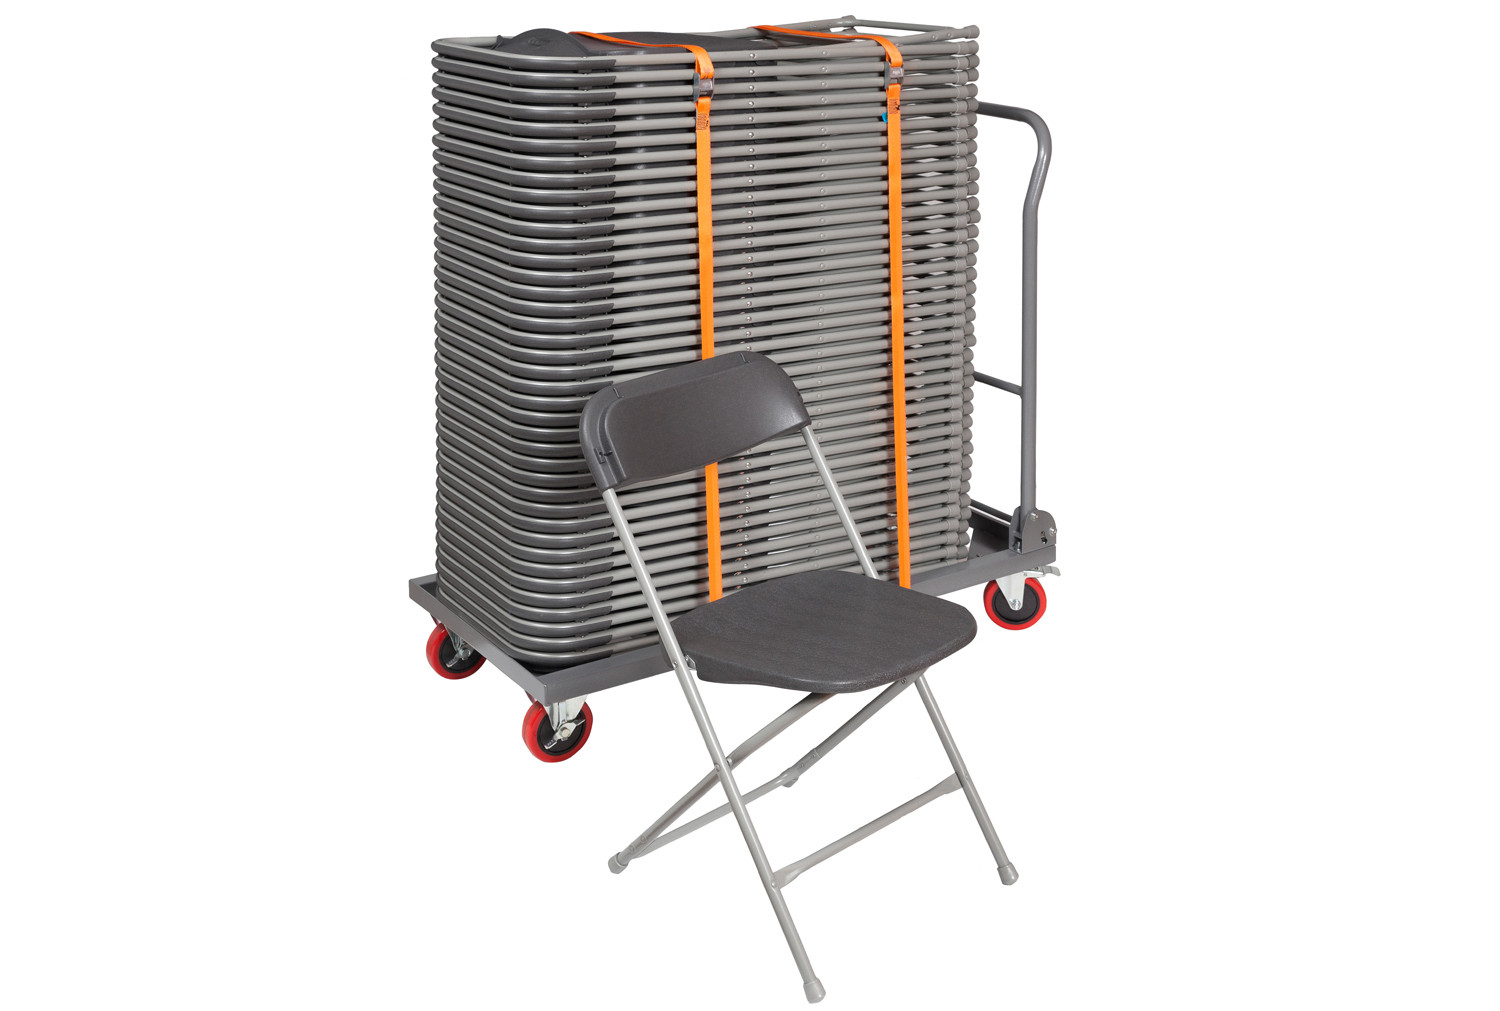 Classic folding chair bundle deal